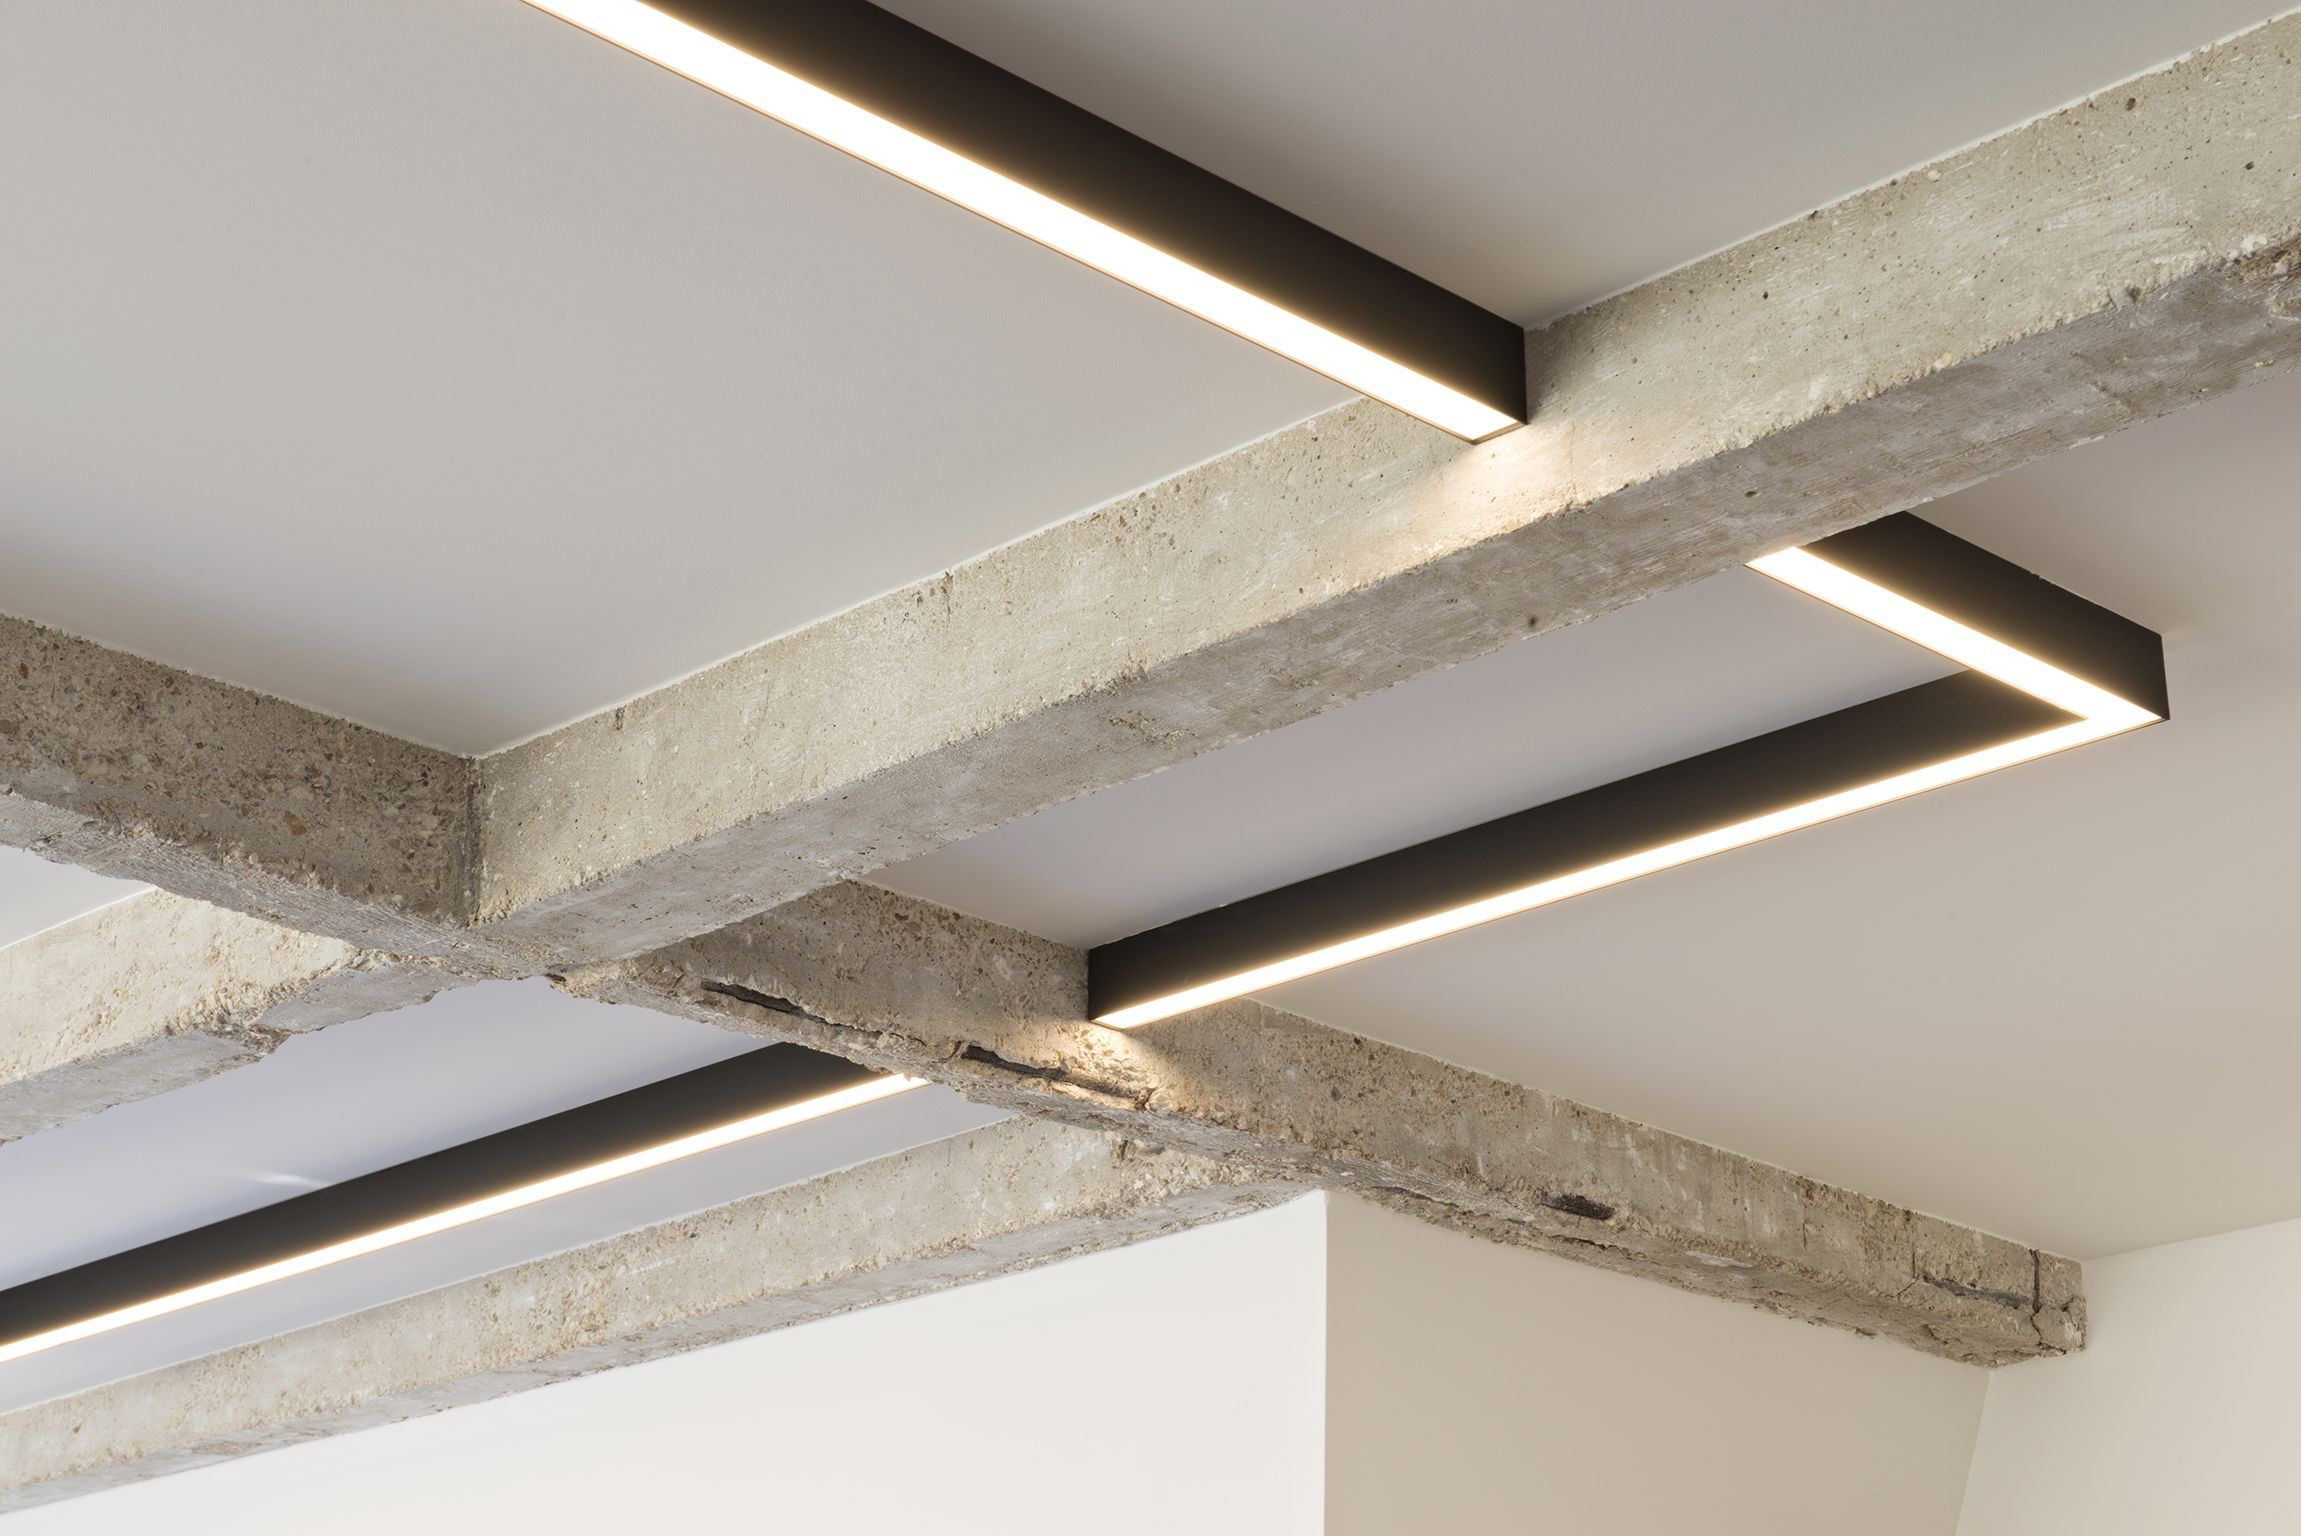 Amazing Ceiling Structure With Our #Supermodular Sld50 Lighting